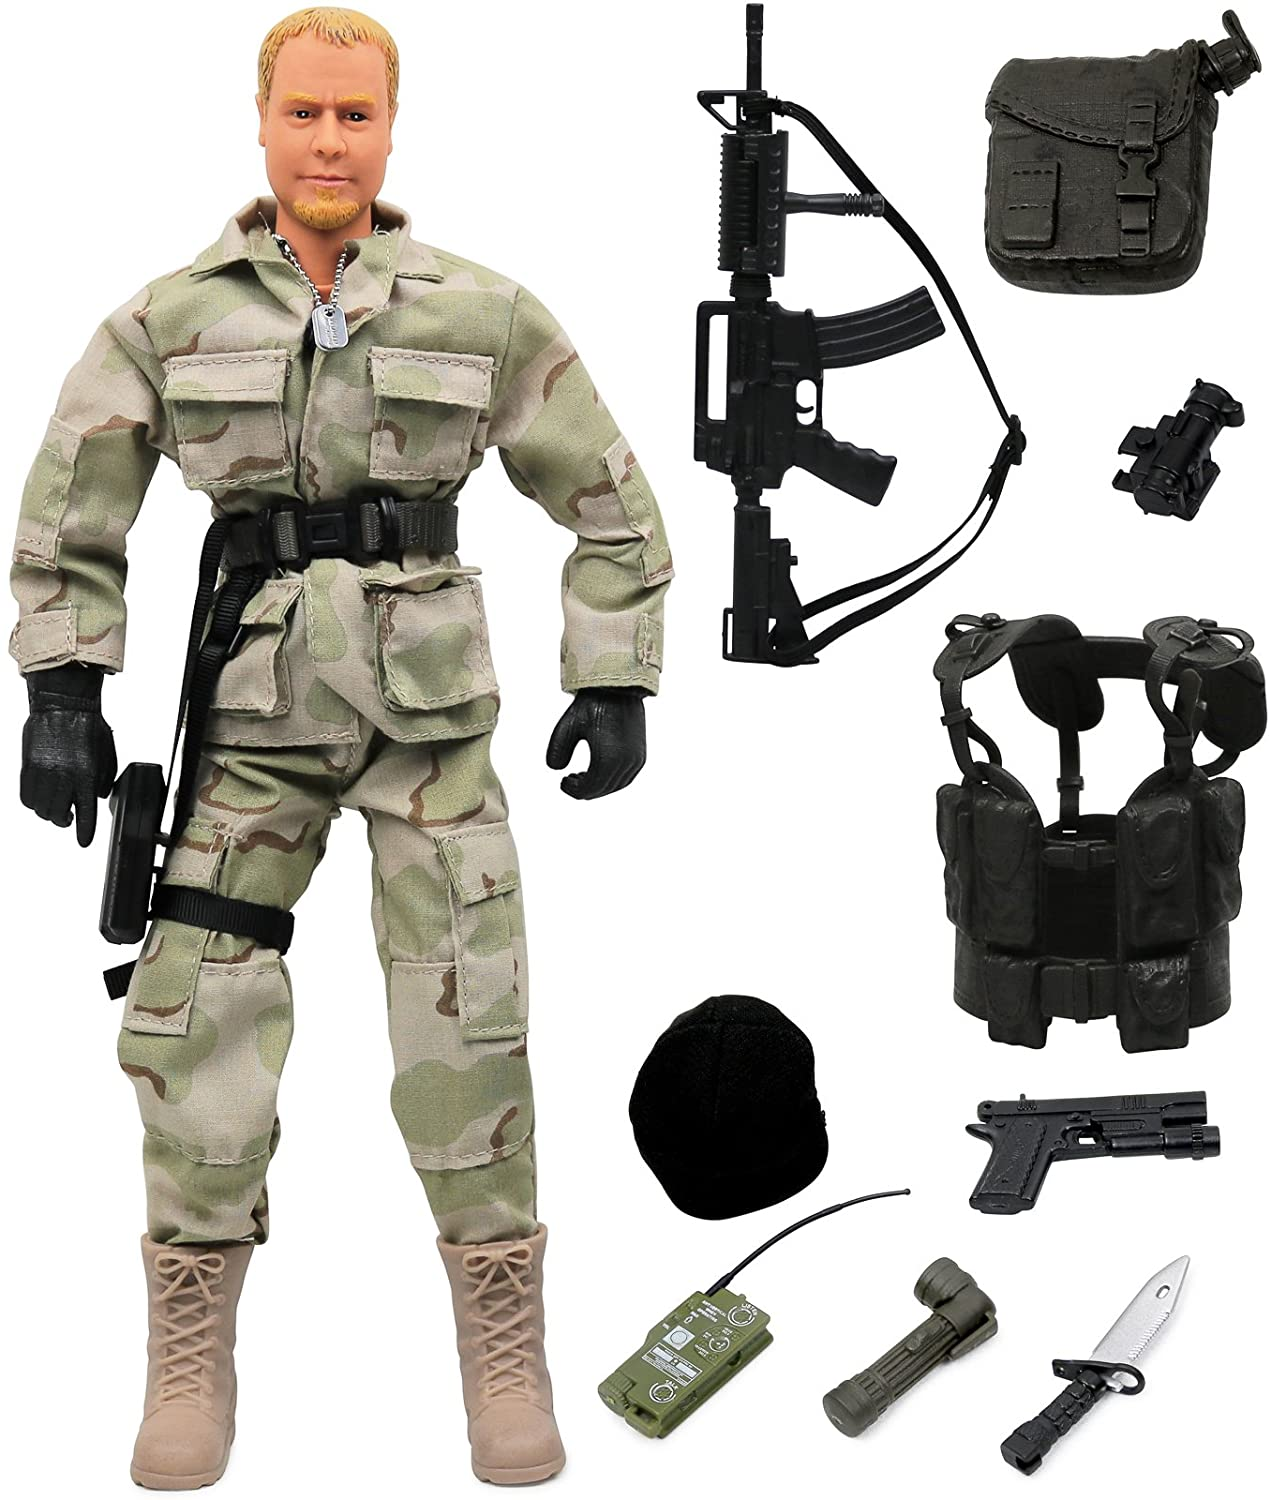 """Click N' Play Military Ranger Swat Unit Action 12"""" Figure Play Set with Accessories"""